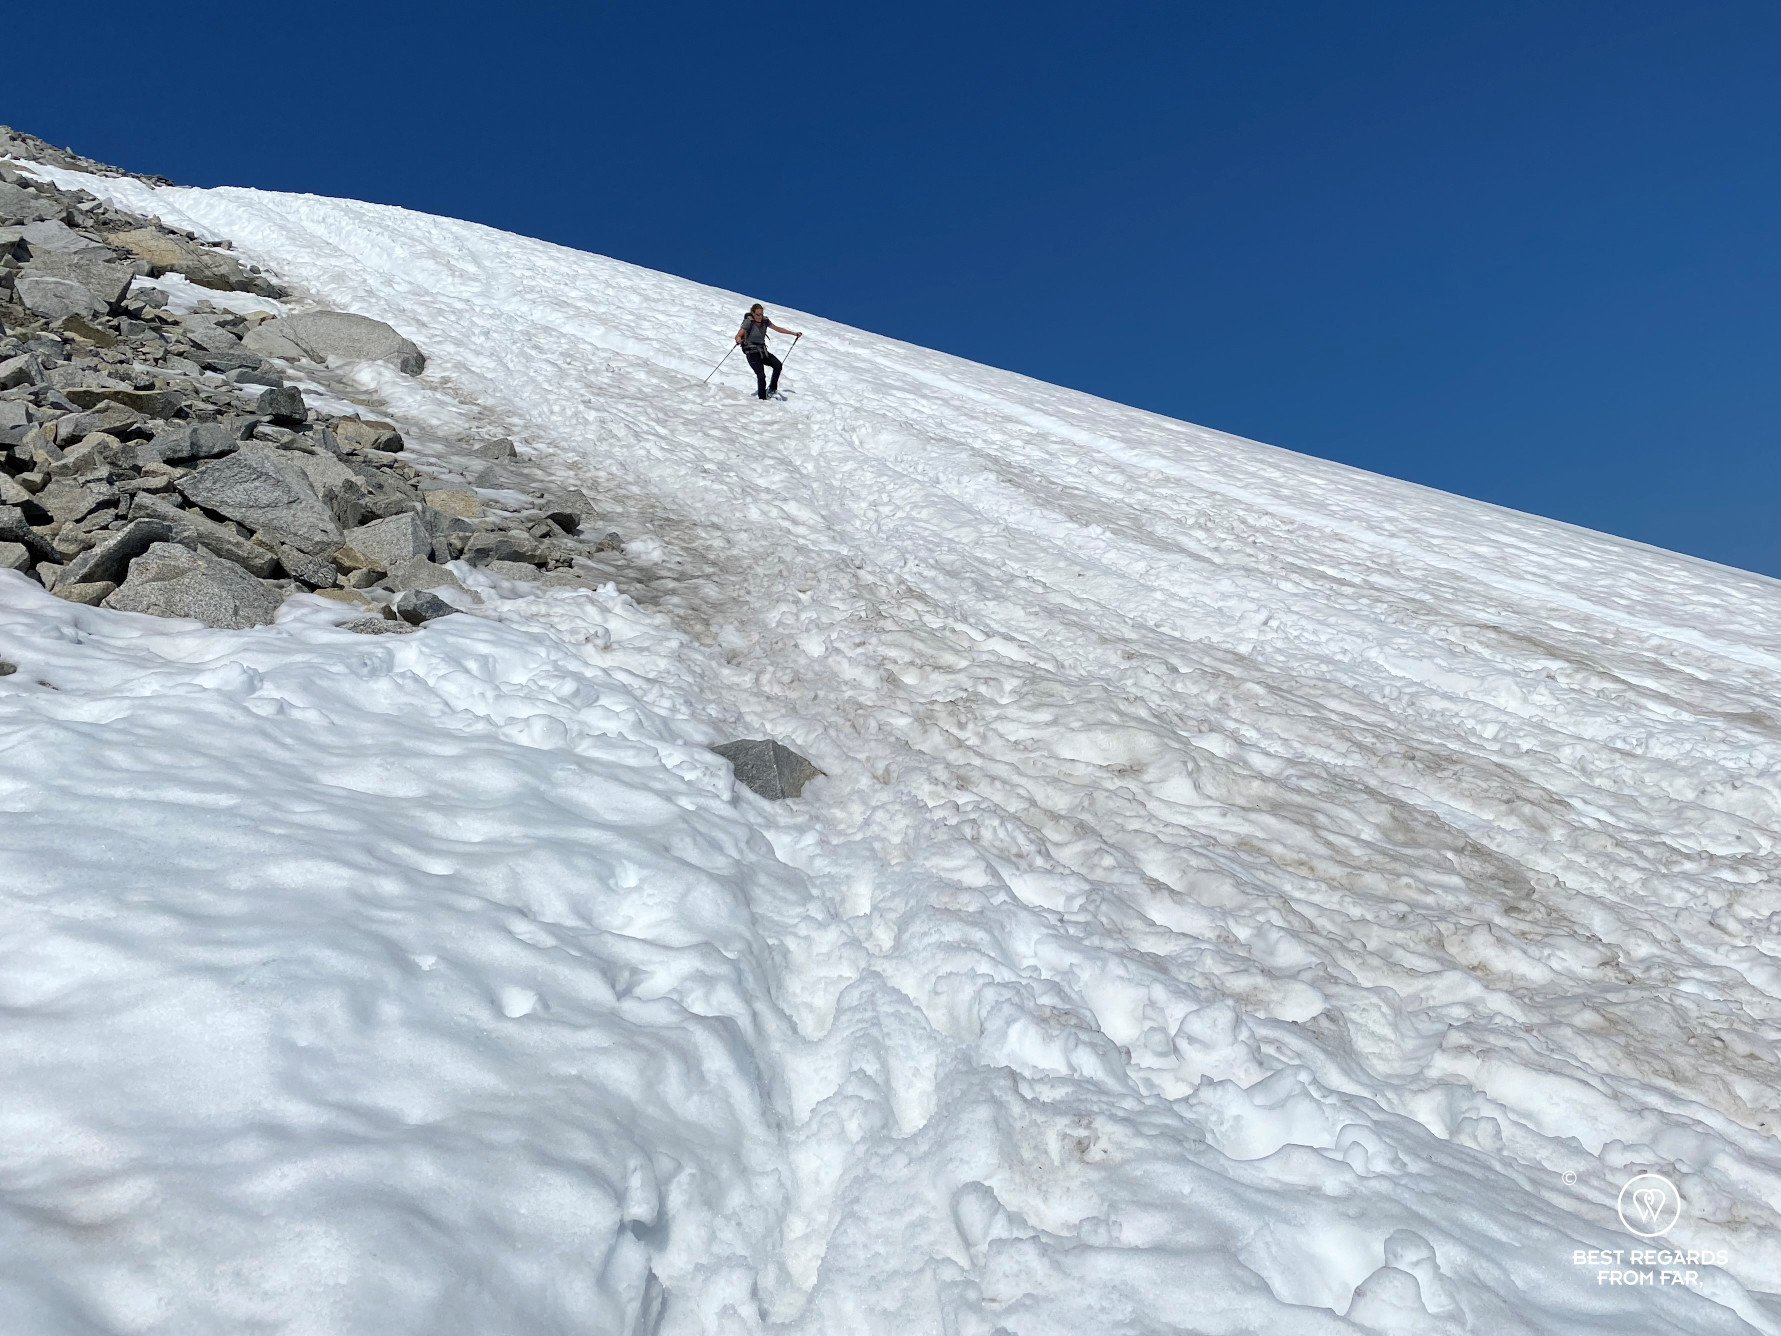 Photographer Marcella van Alphen walking through the snow in summer with blue skies